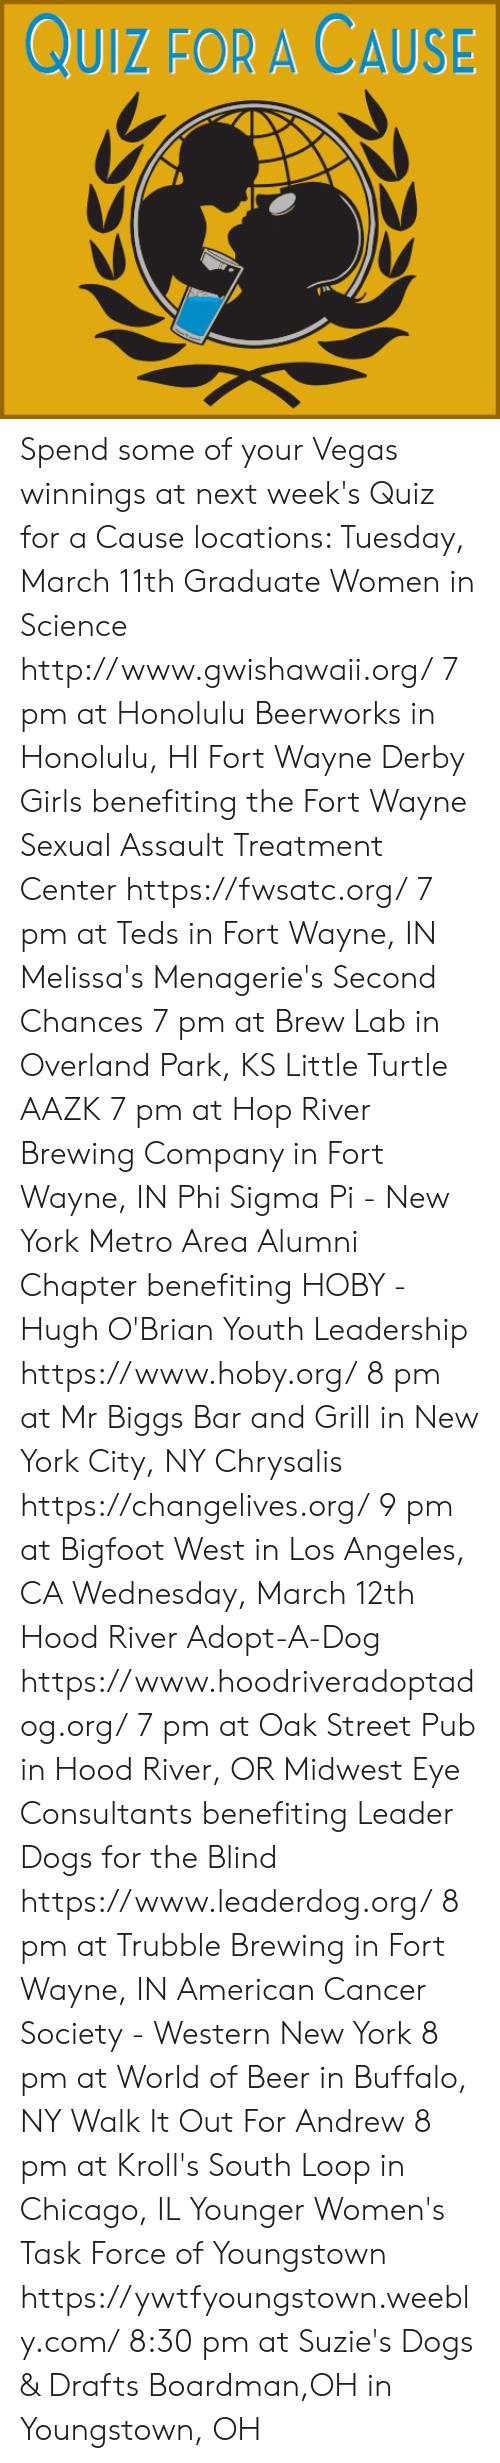 Beer, Bigfoot, and Chicago: UIZ FOR A CAUSE Spend some of your Vegas winnings at next week's Quiz for a Cause locations:   Tuesday, March 11th  Graduate Women in Science http://www.gwishawaii.org/ 7 pm at Honolulu Beerworks in Honolulu, HI  Fort Wayne Derby Girls benefiting the Fort Wayne Sexual Assault Treatment Center https://fwsatc.org/ 7 pm at Teds in Fort Wayne, IN  Melissa's Menagerie's Second Chances 7 pm at Brew Lab in Overland Park, KS  Little Turtle AAZK 7 pm at Hop River Brewing Company in Fort Wayne, IN  Phi Sigma Pi - New York Metro Area Alumni Chapter benefiting HOBY - Hugh O'Brian Youth Leadership https://www.hoby.org/ 8 pm at Mr Biggs Bar and Grill in New York City, NY  Chrysalis https://changelives.org/ 9 pm at Bigfoot West in Los Angeles, CA  Wednesday, March 12th  Hood River Adopt-A-Dog https://www.hoodriveradoptadog.org/ 7 pm at Oak Street Pub in Hood River, OR  Midwest Eye Consultants benefiting Leader Dogs for the Blind https://www.leaderdog.org/ 8 pm at Trubble Brewing in Fort Wayne, IN  American Cancer Society - Western New York 8 pm at World of Beer in Buffalo, NY  Walk It Out For Andrew 8 pm at Kroll's South Loop in Chicago, IL  Younger Women's Task Force of Youngstown https://ywtfyoungstown.weebly.com/ 8:30 pm at Suzie's Dogs & Drafts Boardman,OH in Youngstown, OH